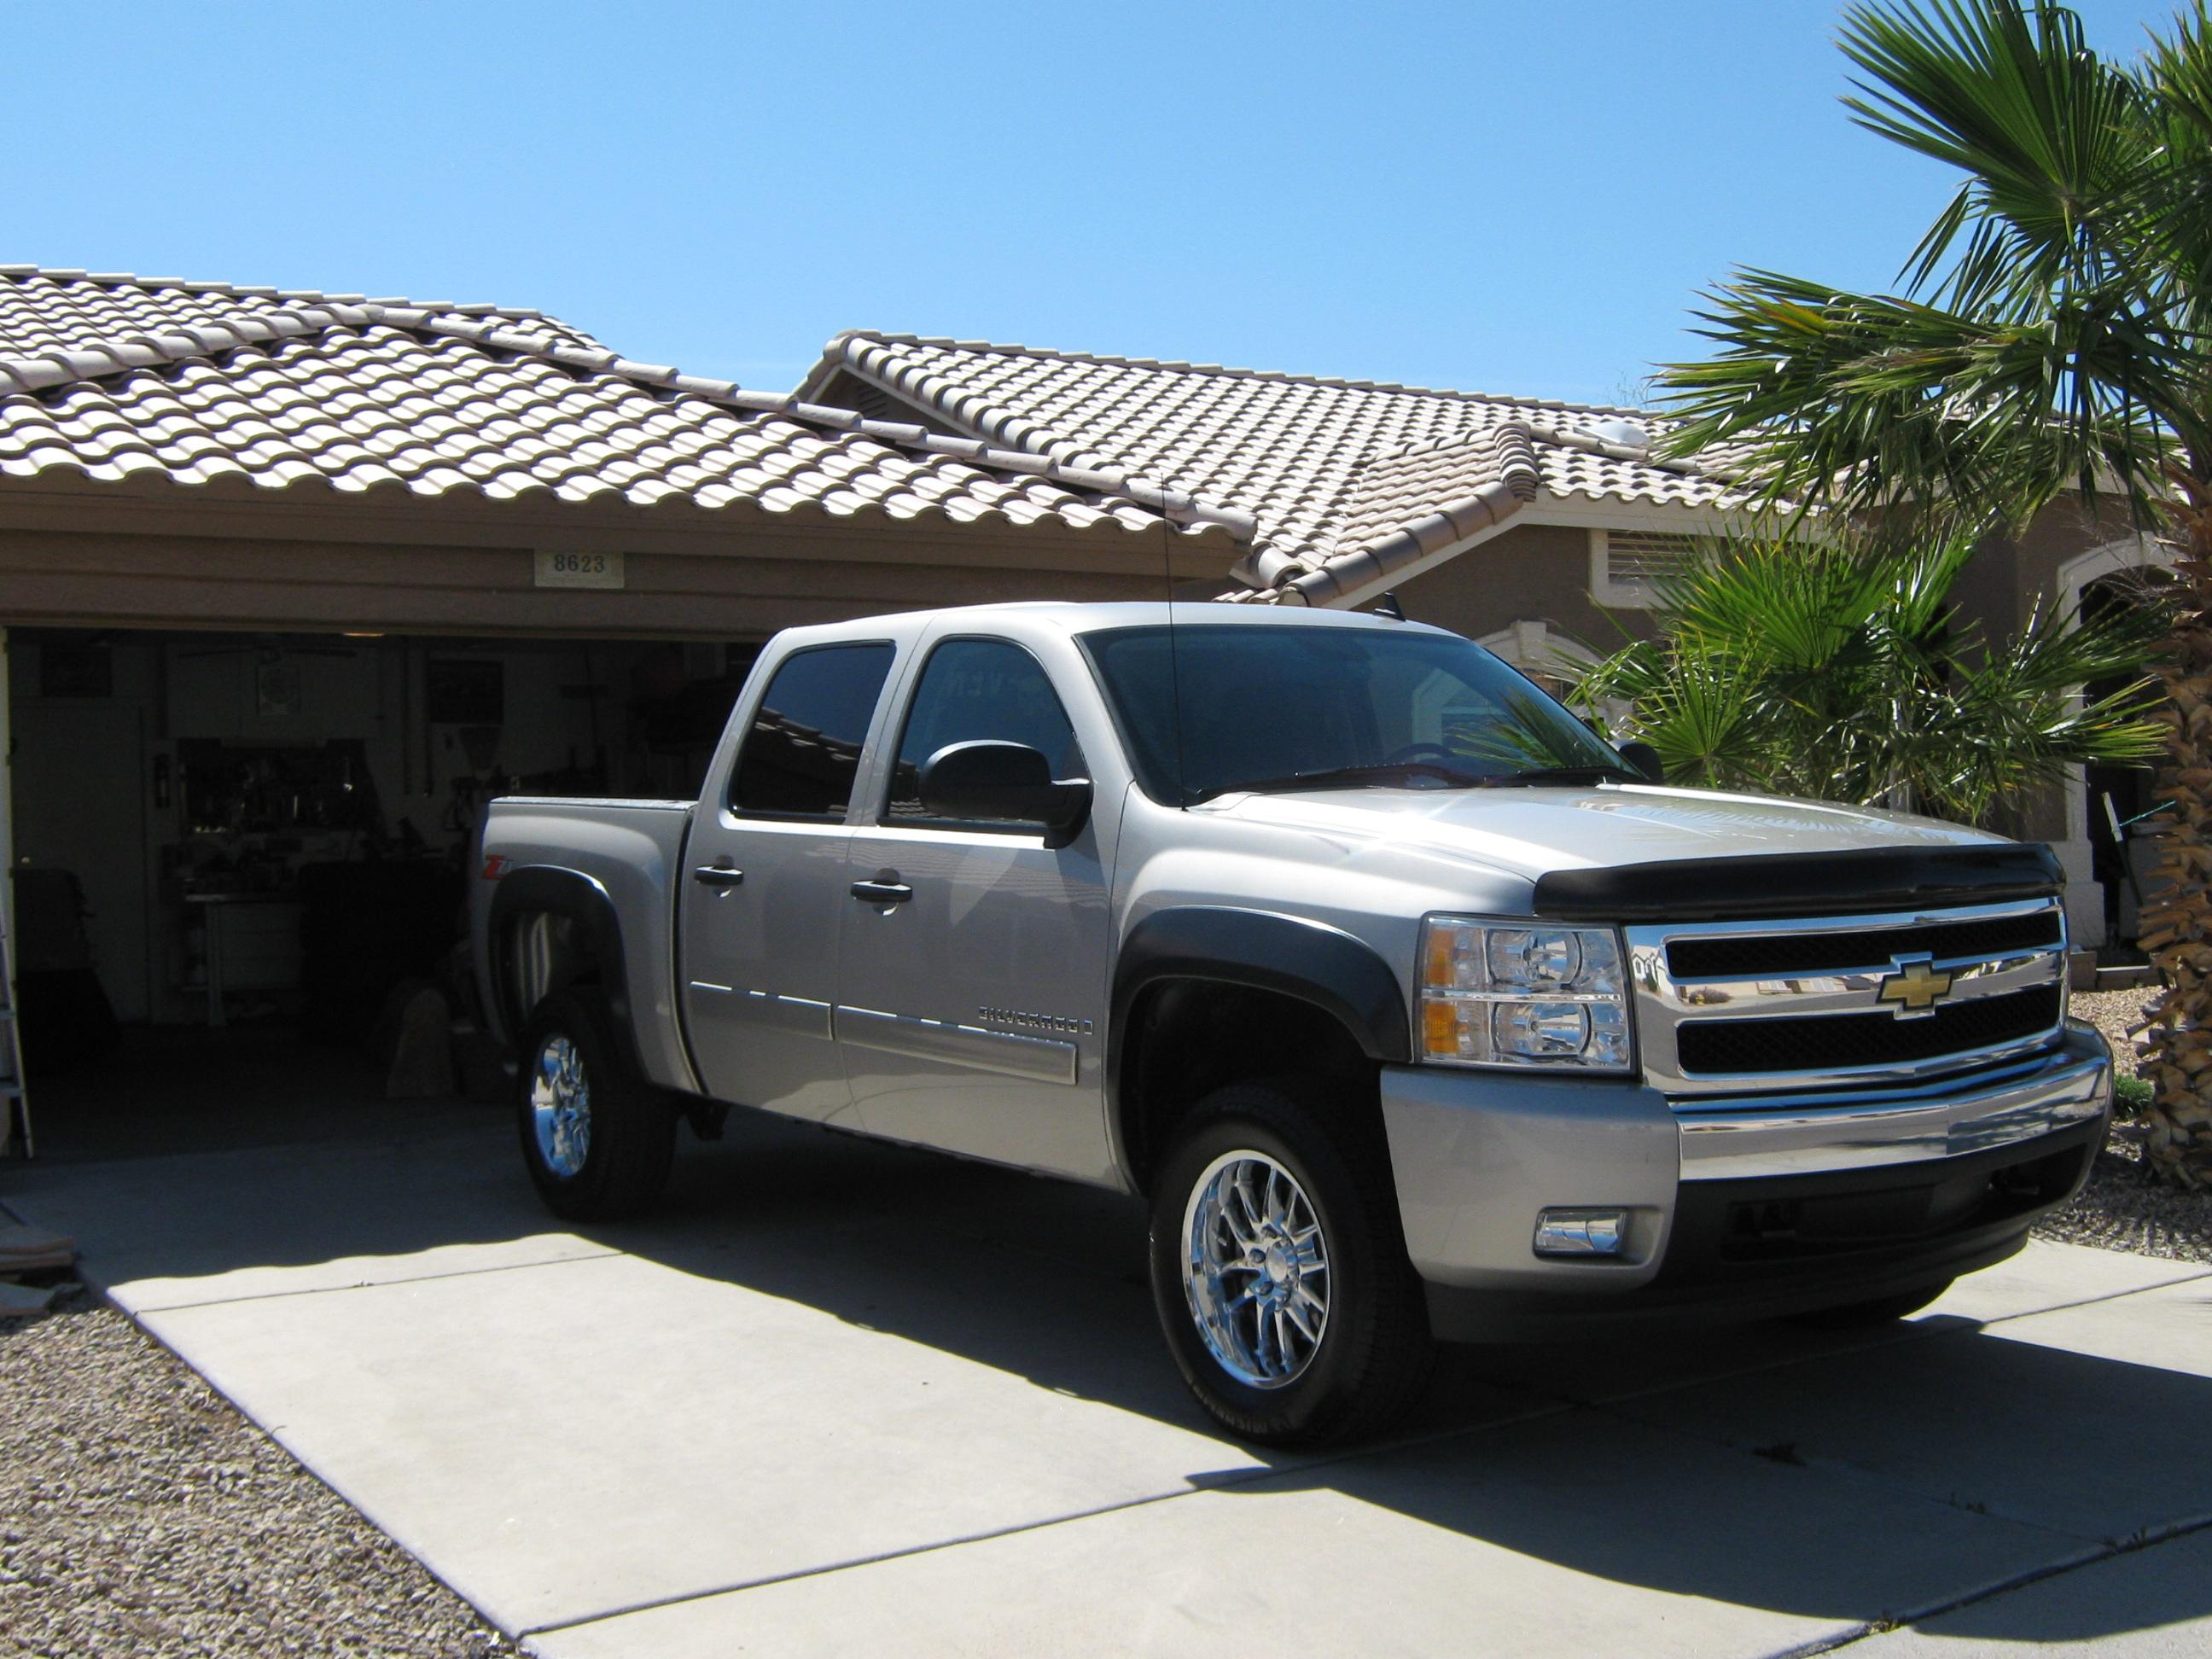 iconrider 2009 chevrolet silverado 1500 hd crew cab specs. Black Bedroom Furniture Sets. Home Design Ideas